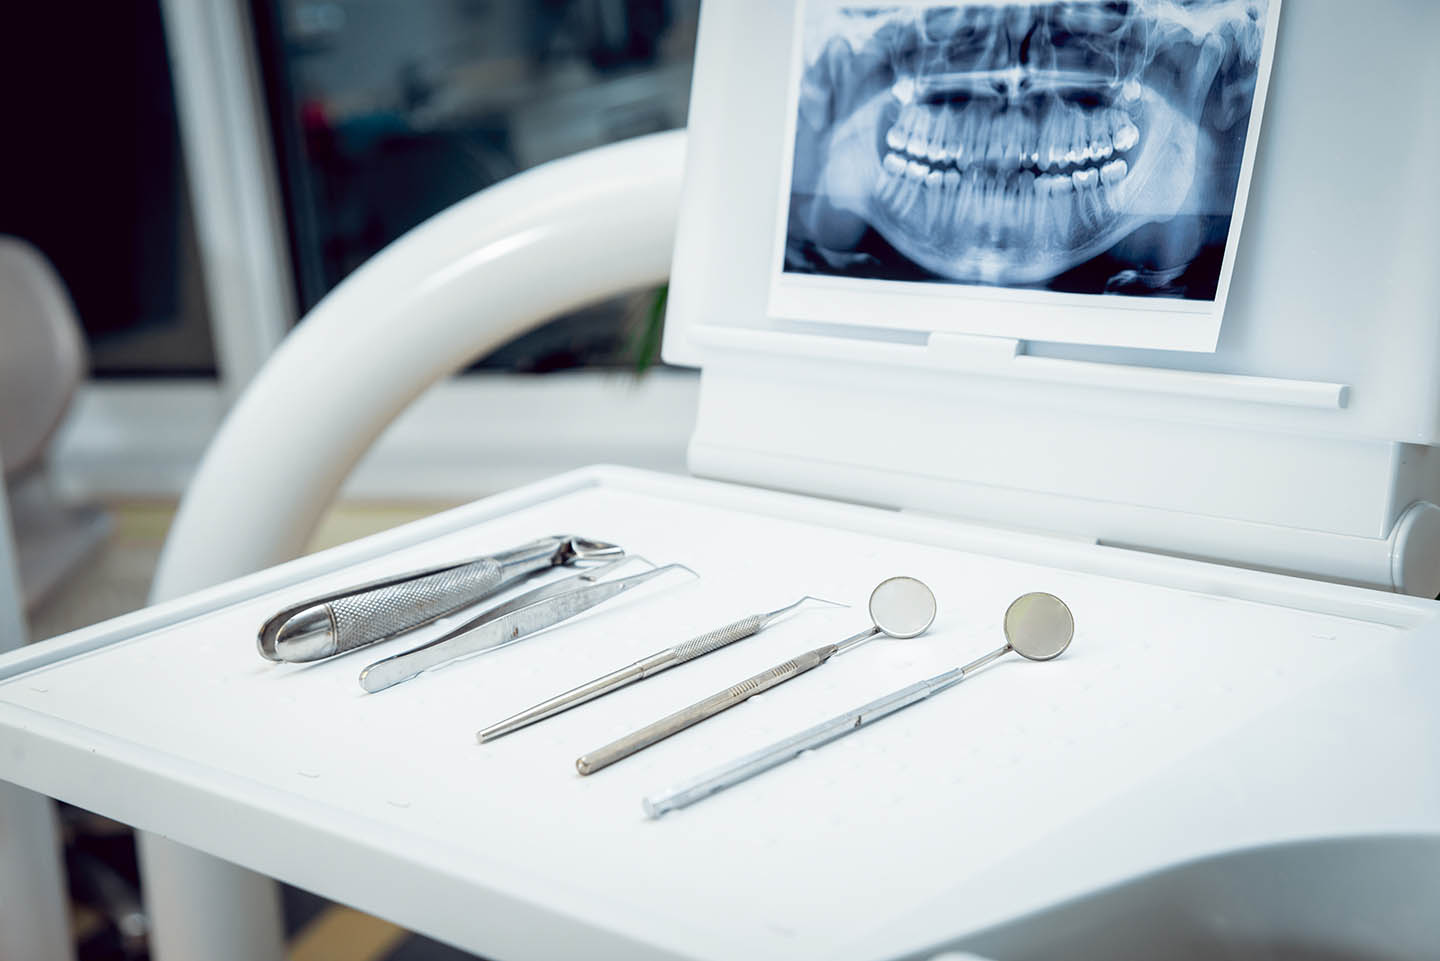 dentistry tools and an x-ray